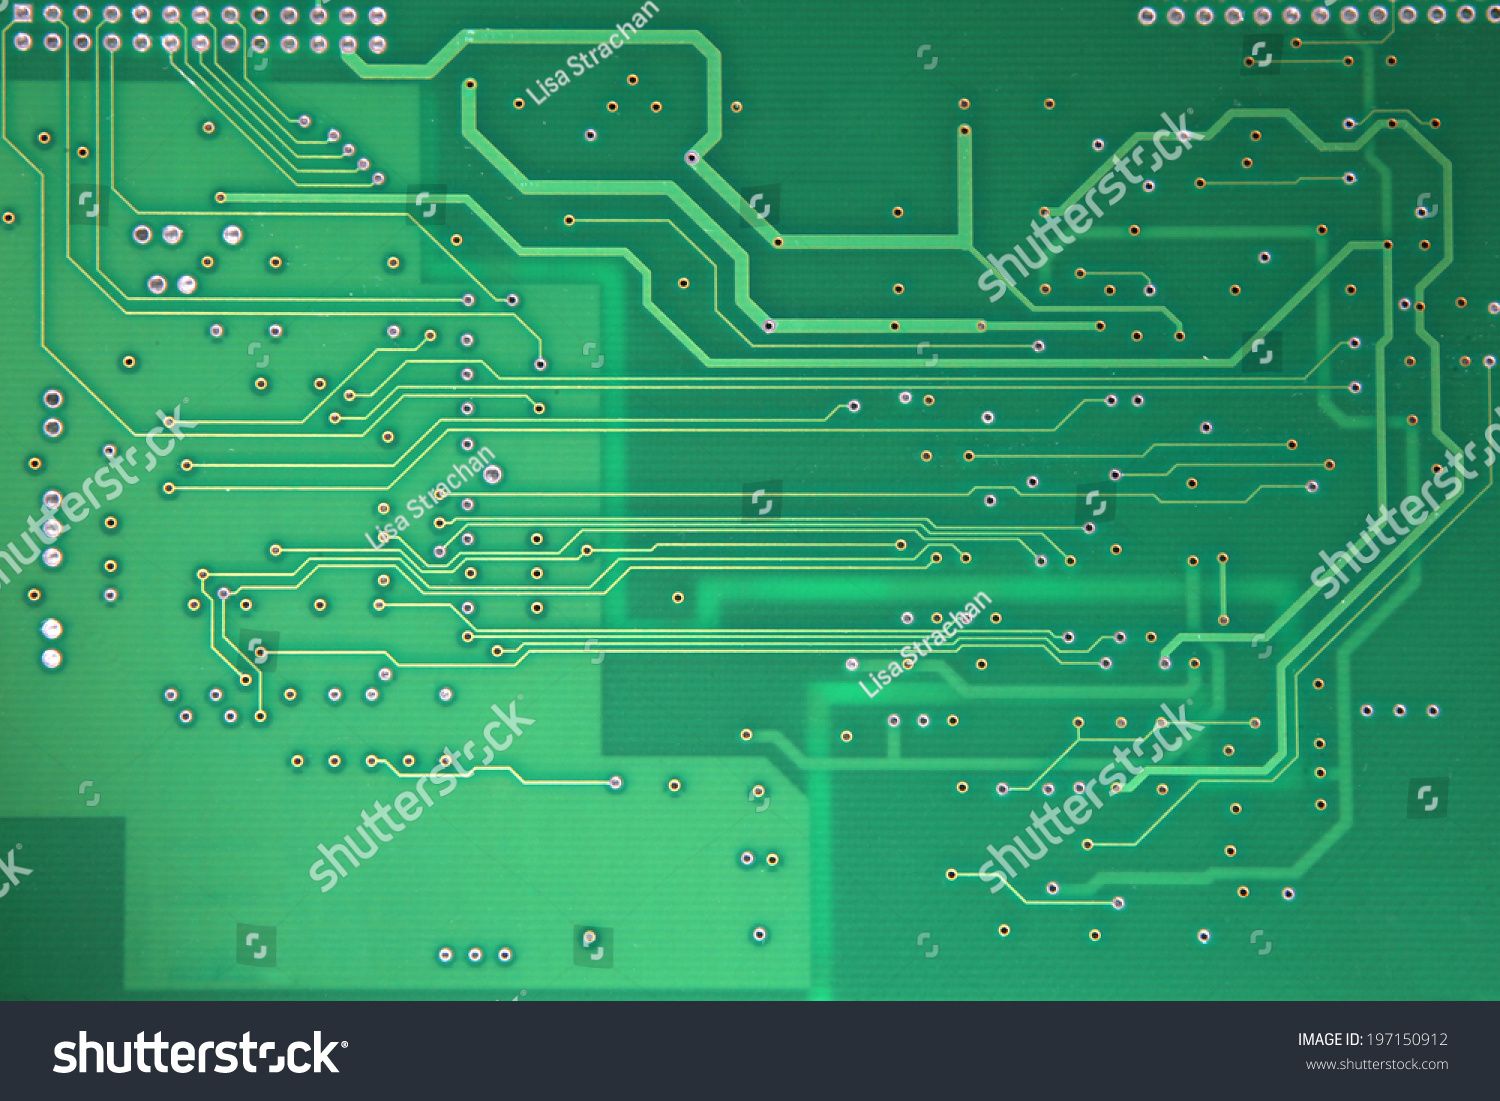 Bare Printed Circuit Board Pcb Green Stock Photo Edit Now Buy Home Theater Boardcircuit Boards Orderpcb In Resist Undergoing Inspection